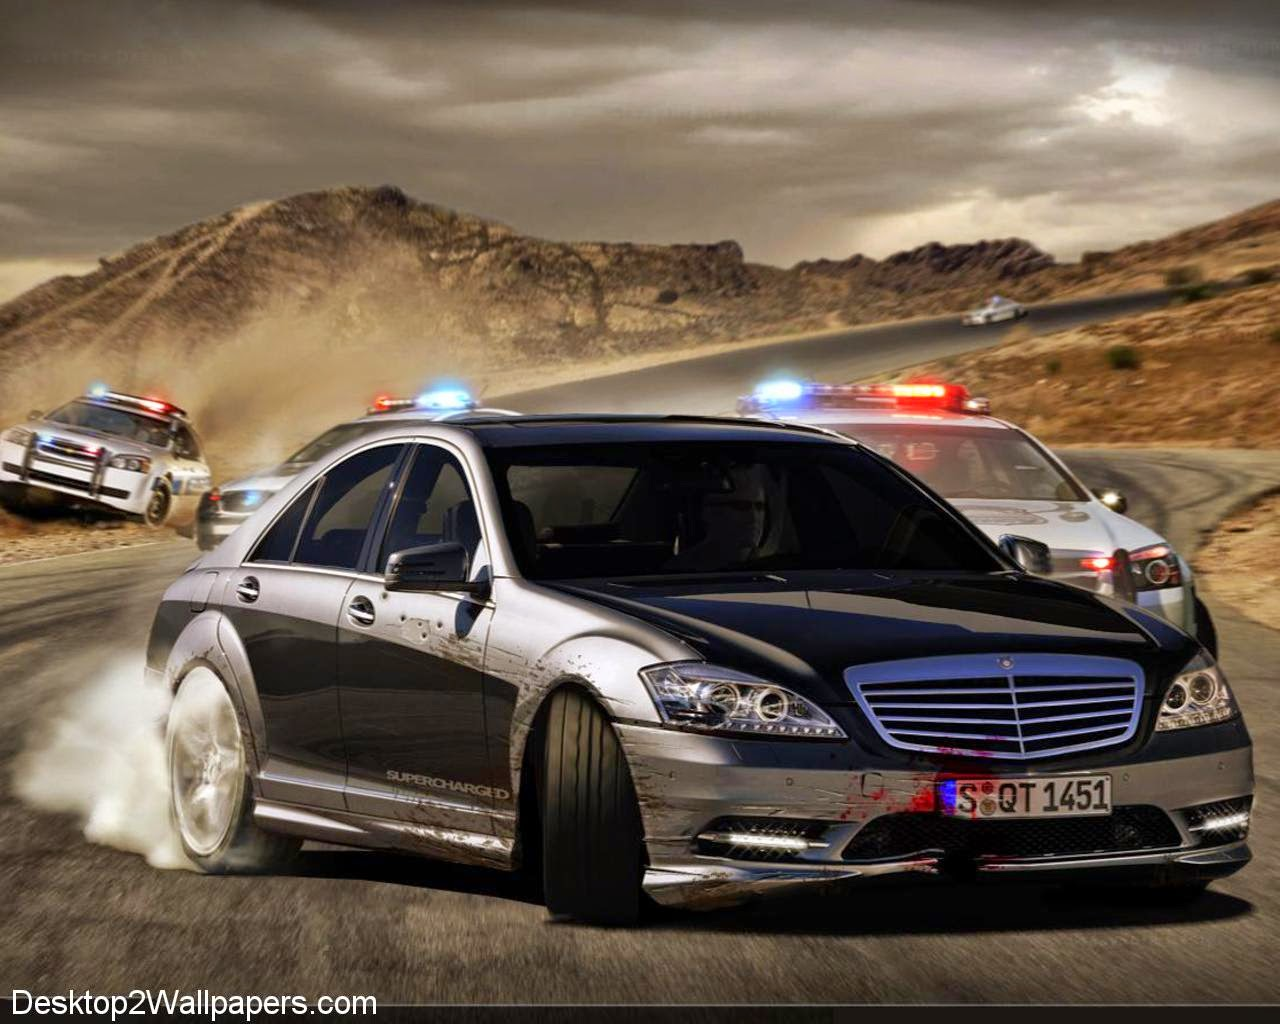 Beautiful wallpapers amazing wallpapers hd wallpapers for Mercedes benz luxury car